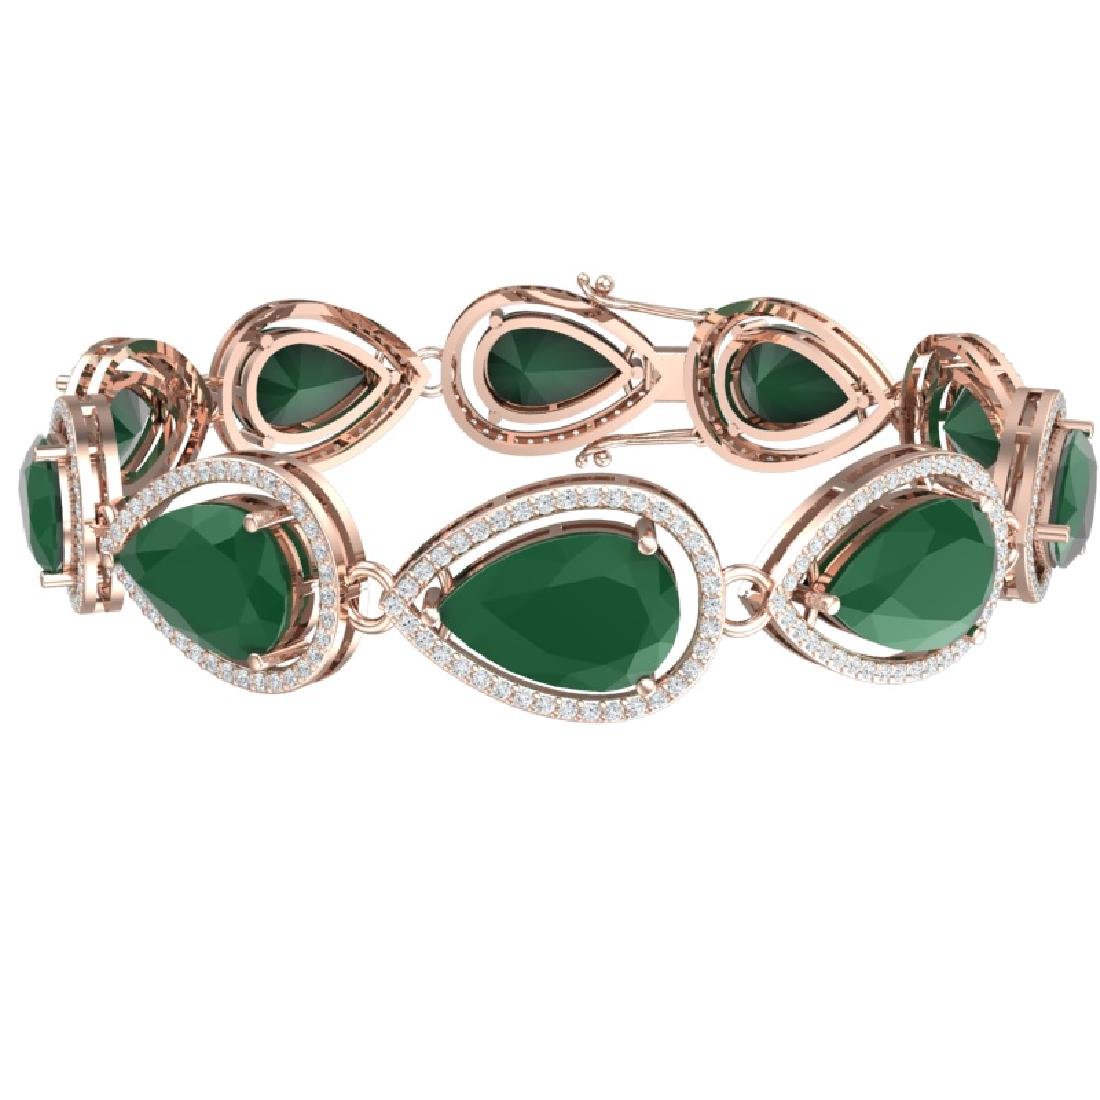 28.31 CTW Royalty Emerald & VS Diamond Bracelet 18K - 2